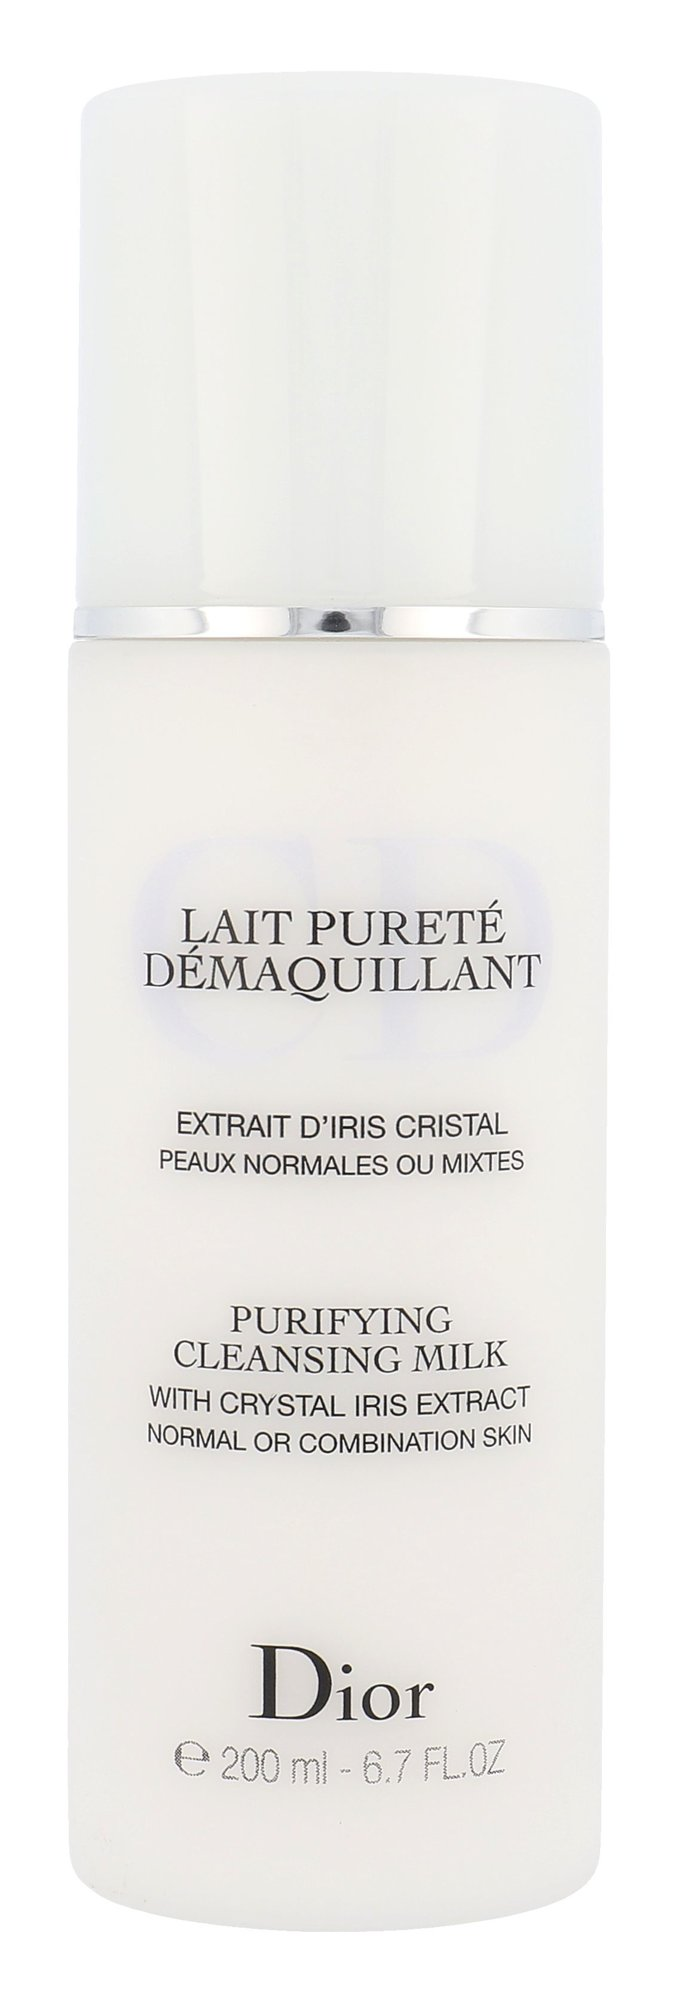 Christian Dior Purifying Cleansing Milk Cosmetic 200ml